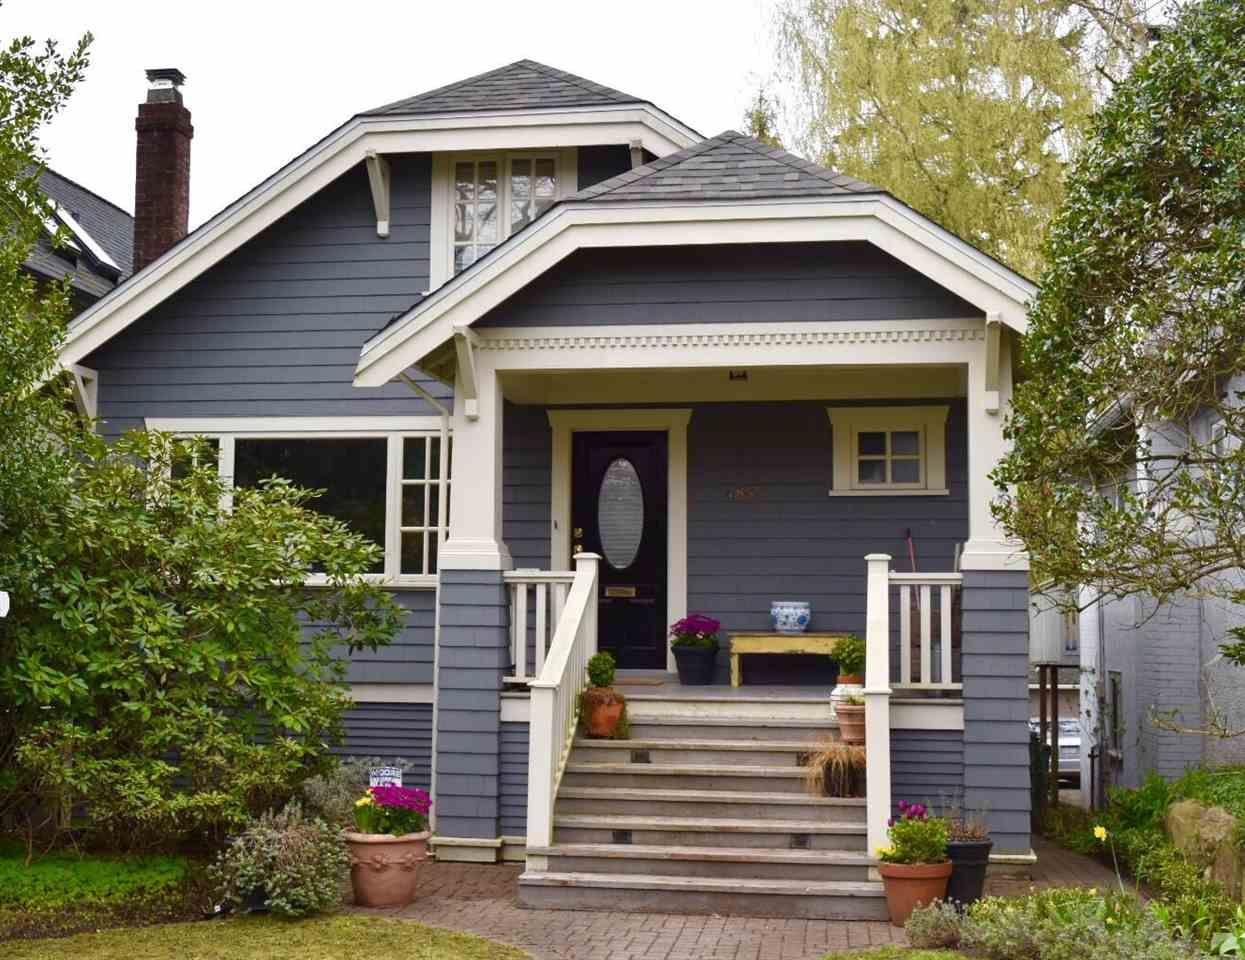 """Main Photo: 4855 COLLINGWOOD Street in Vancouver: Dunbar House for sale in """"Dunbar"""" (Vancouver West)  : MLS®# R2155905"""